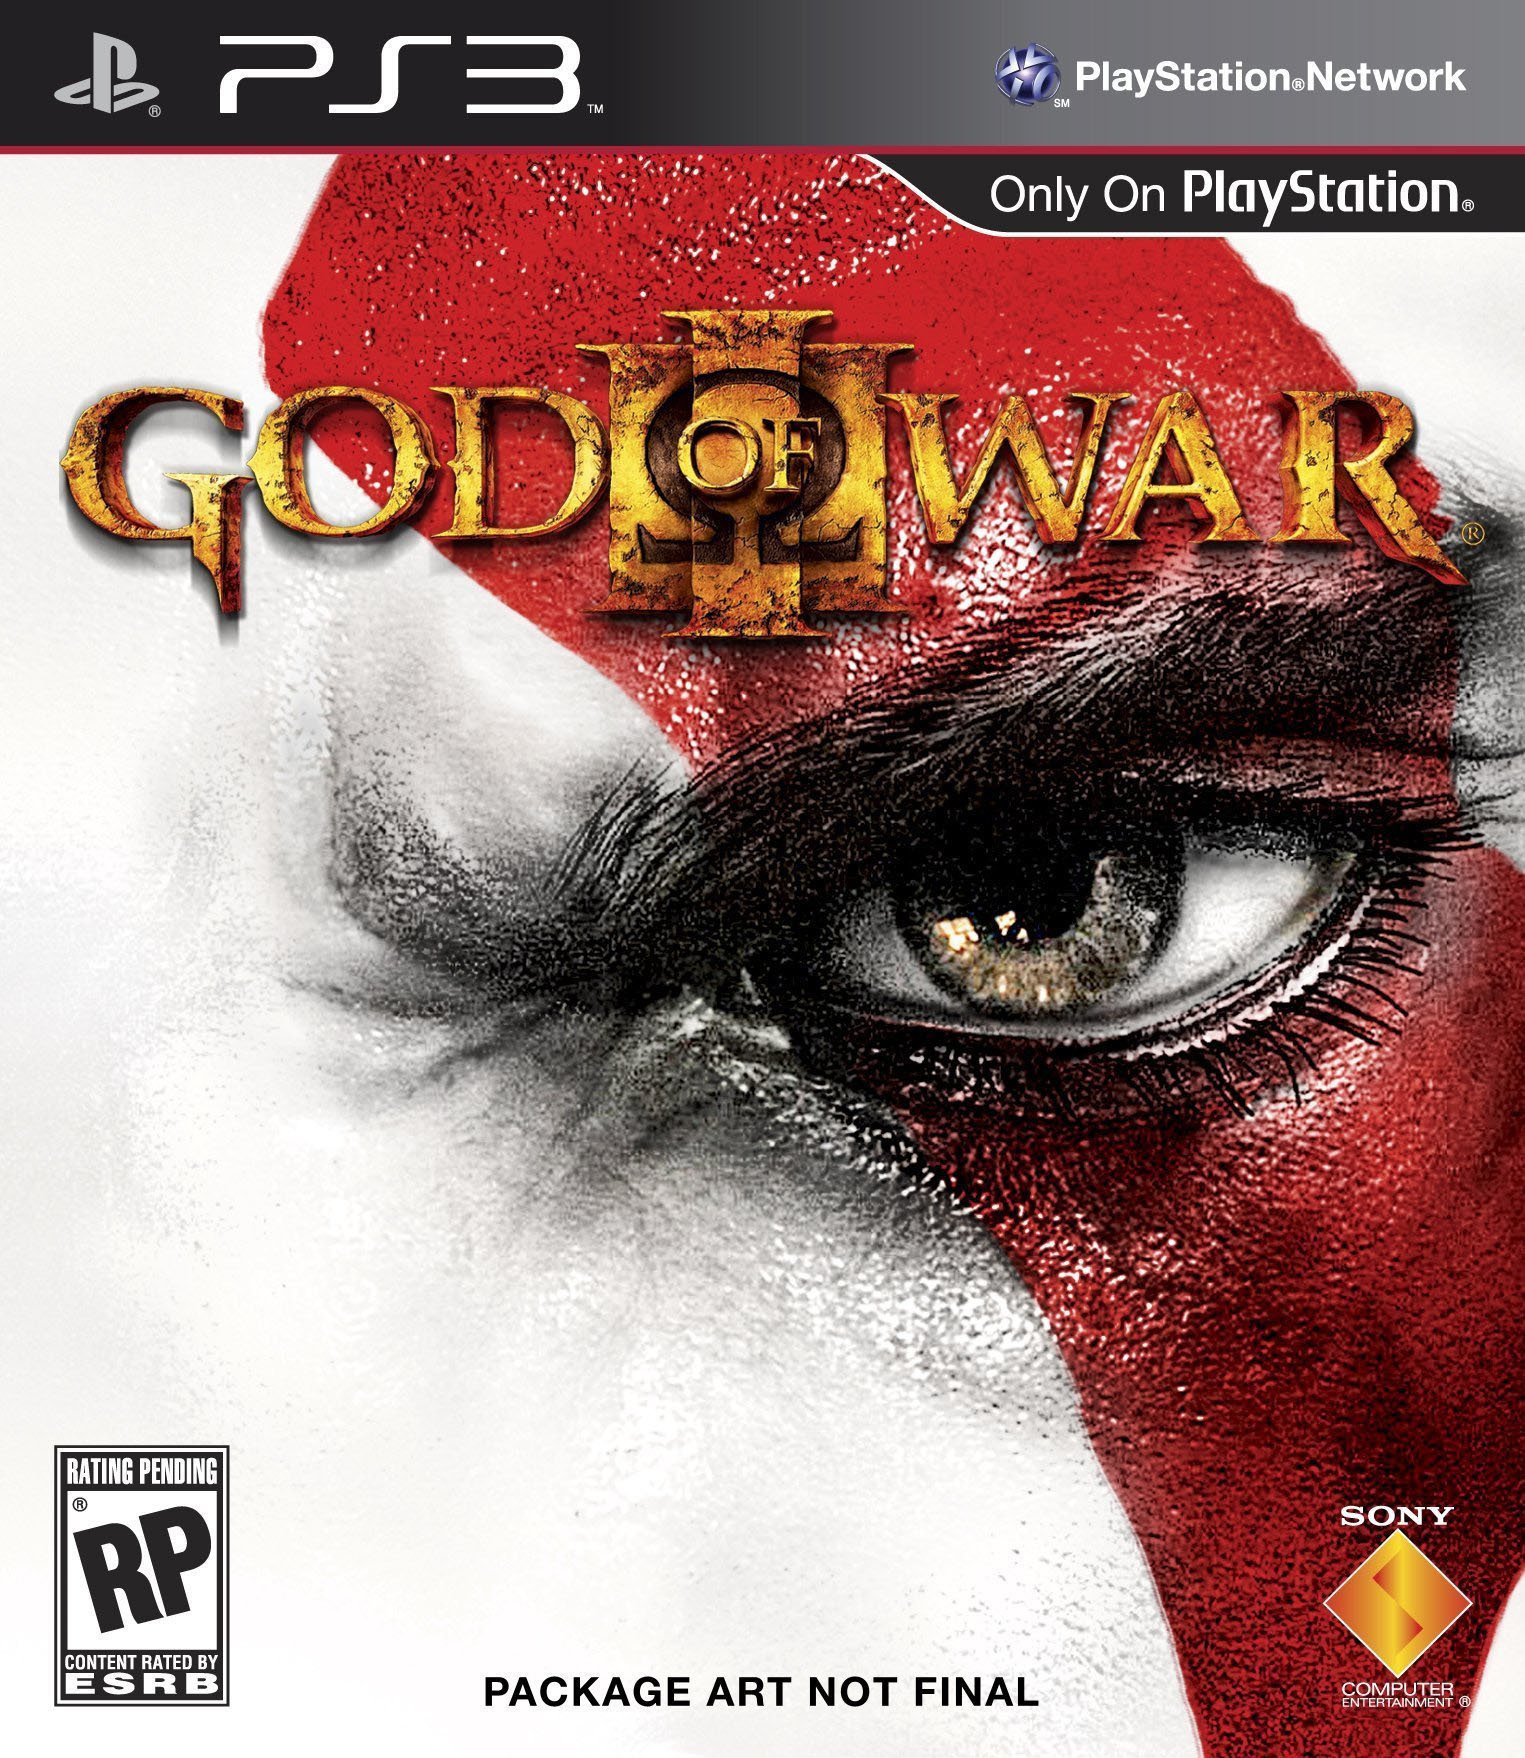 Wallpaper on Kratos God Of War Hd Wallpaper   Army   Military   485517